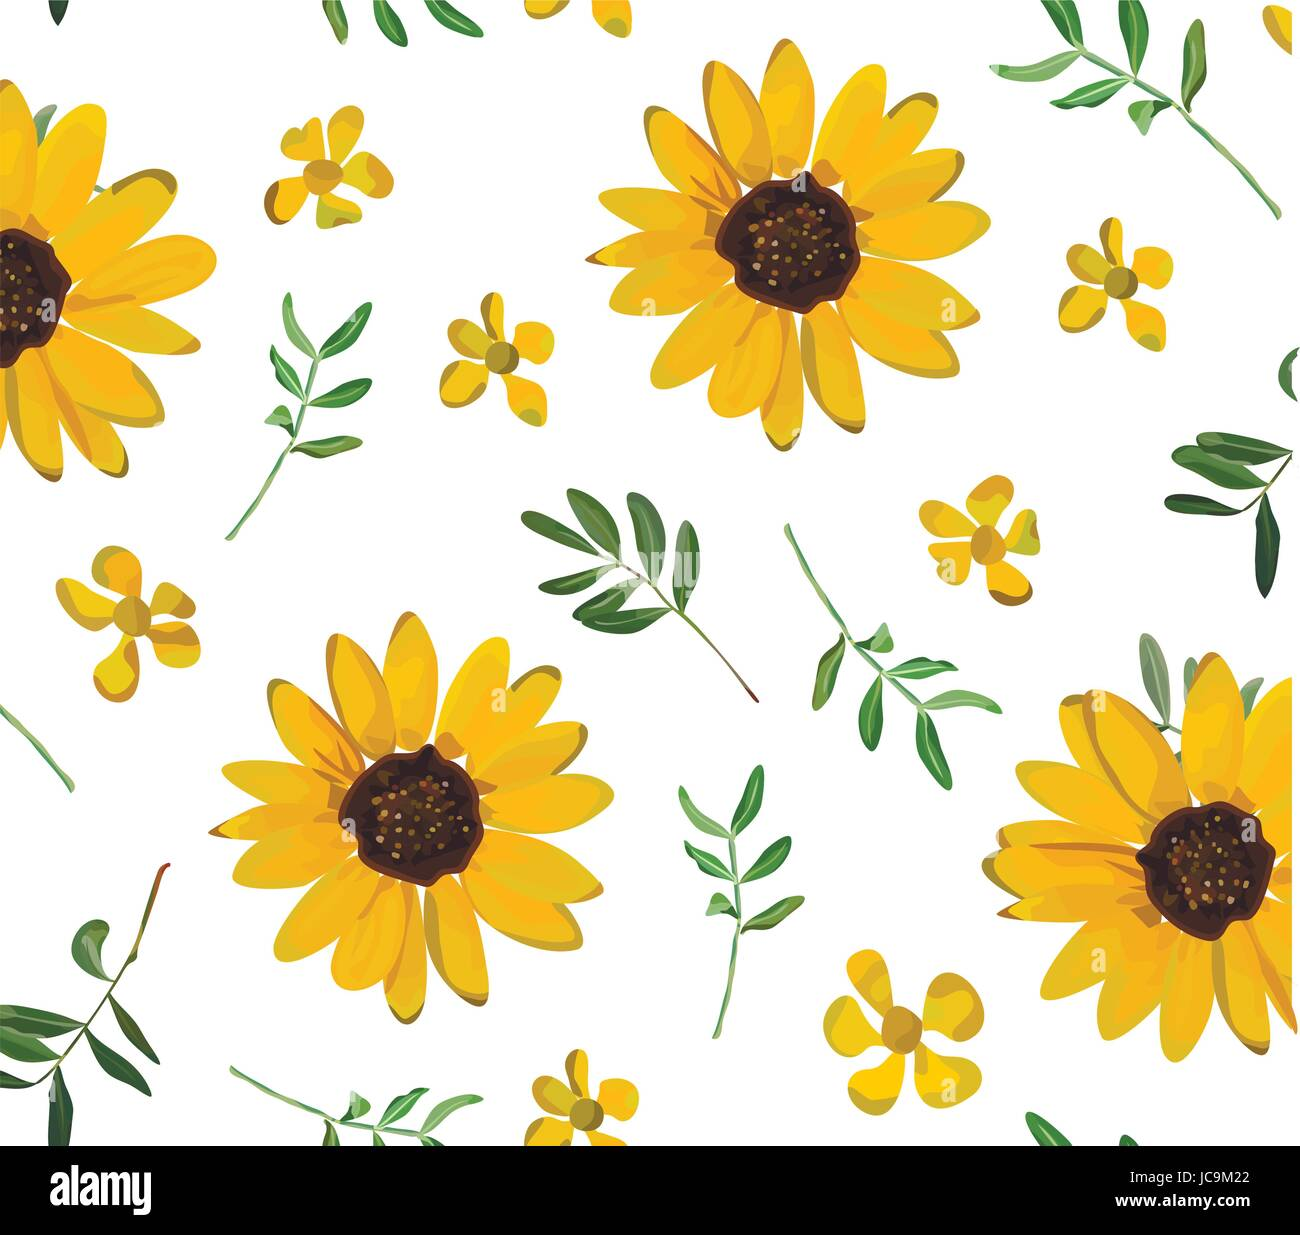 Cute Rustic Fall Wallpapers Vintage Yellow Sunflower Tiny Beautiful Soft Flowers Green